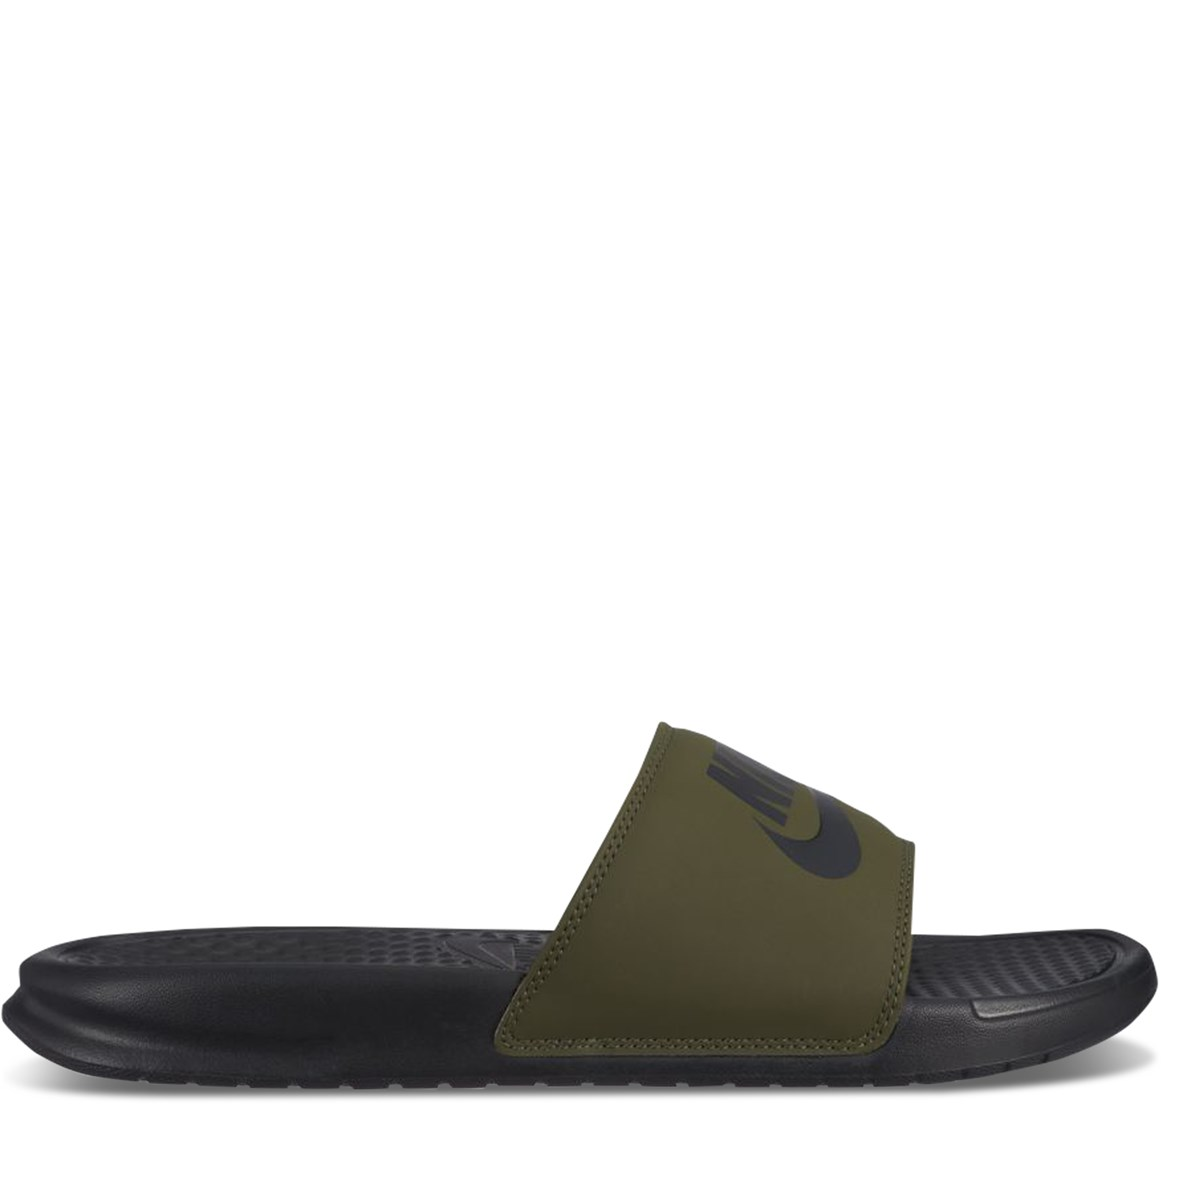 Men's Benassi Slide in Khaki